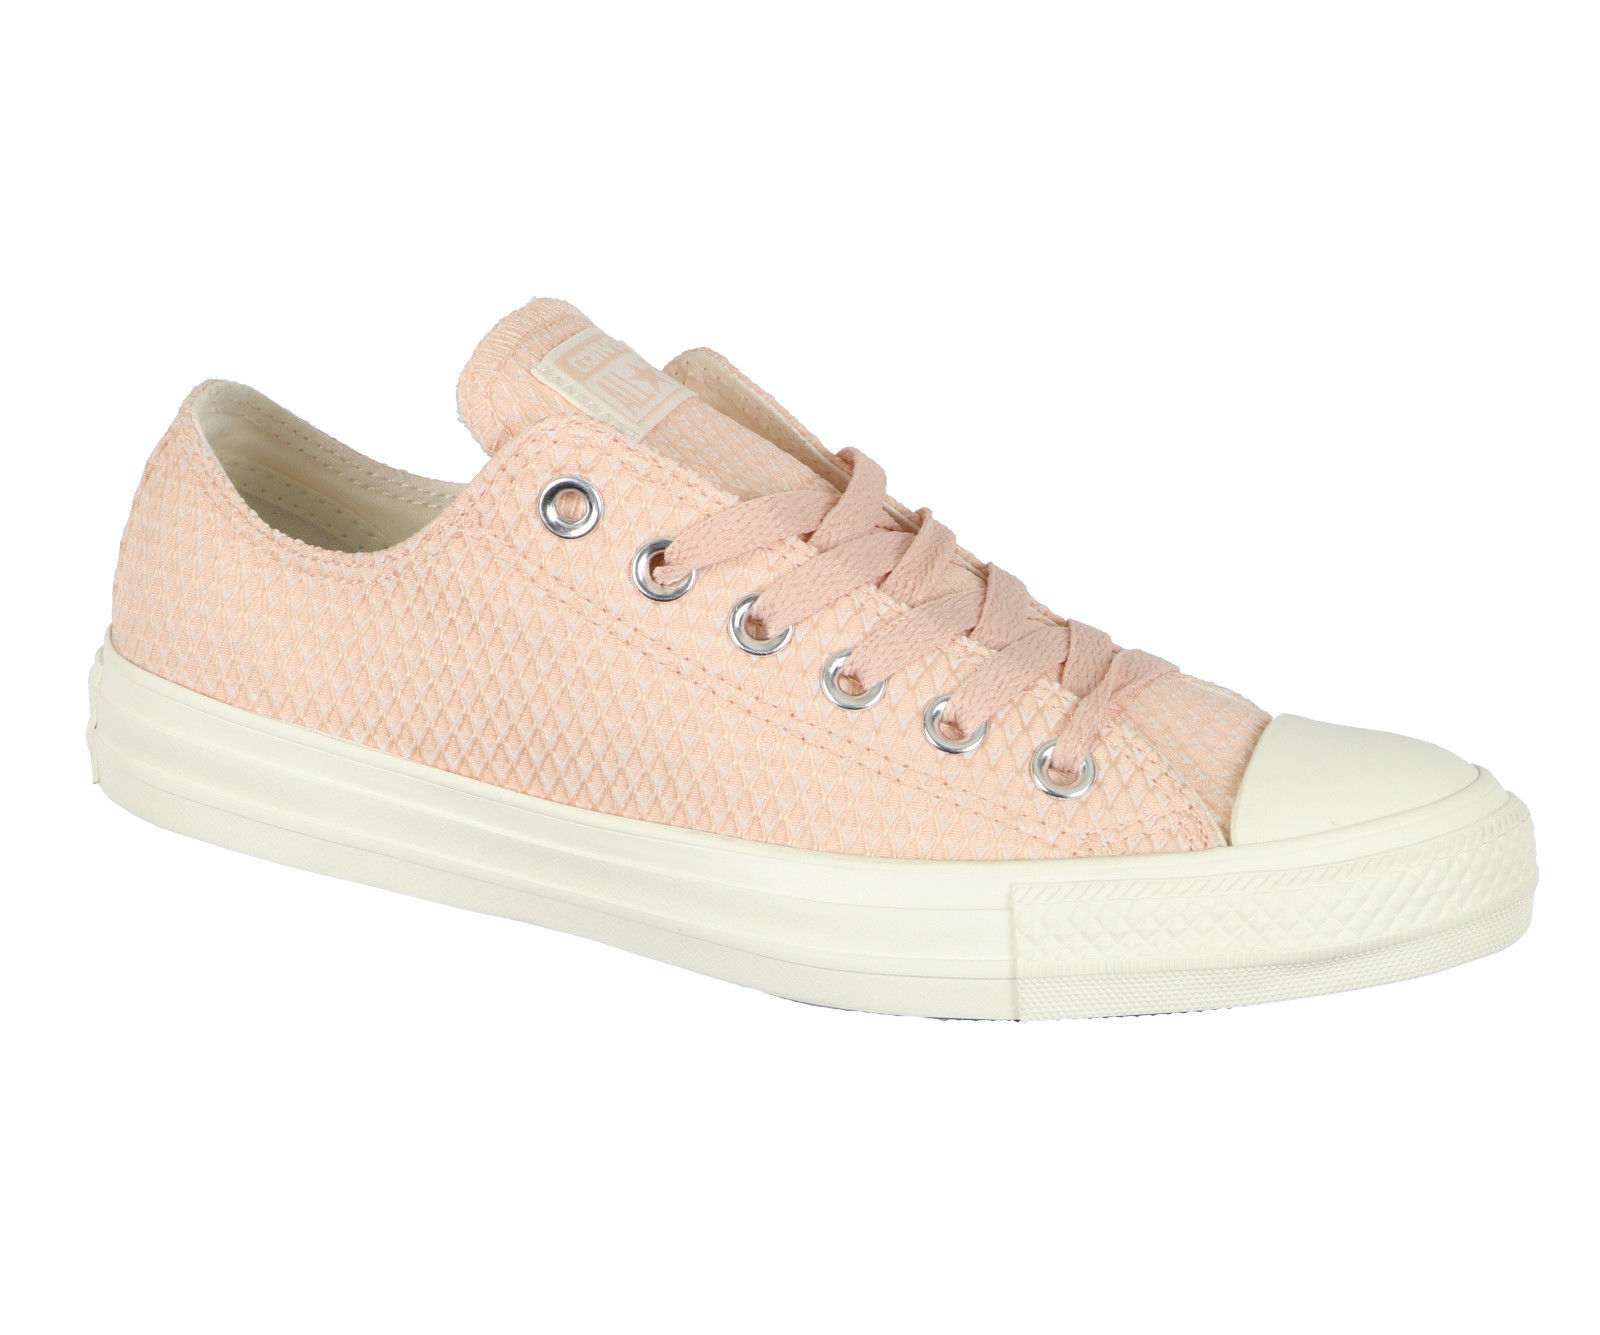 CONVERSE Women's Chuck Taylor All Star OX Low sz 7 Dust Pink Beige Textile